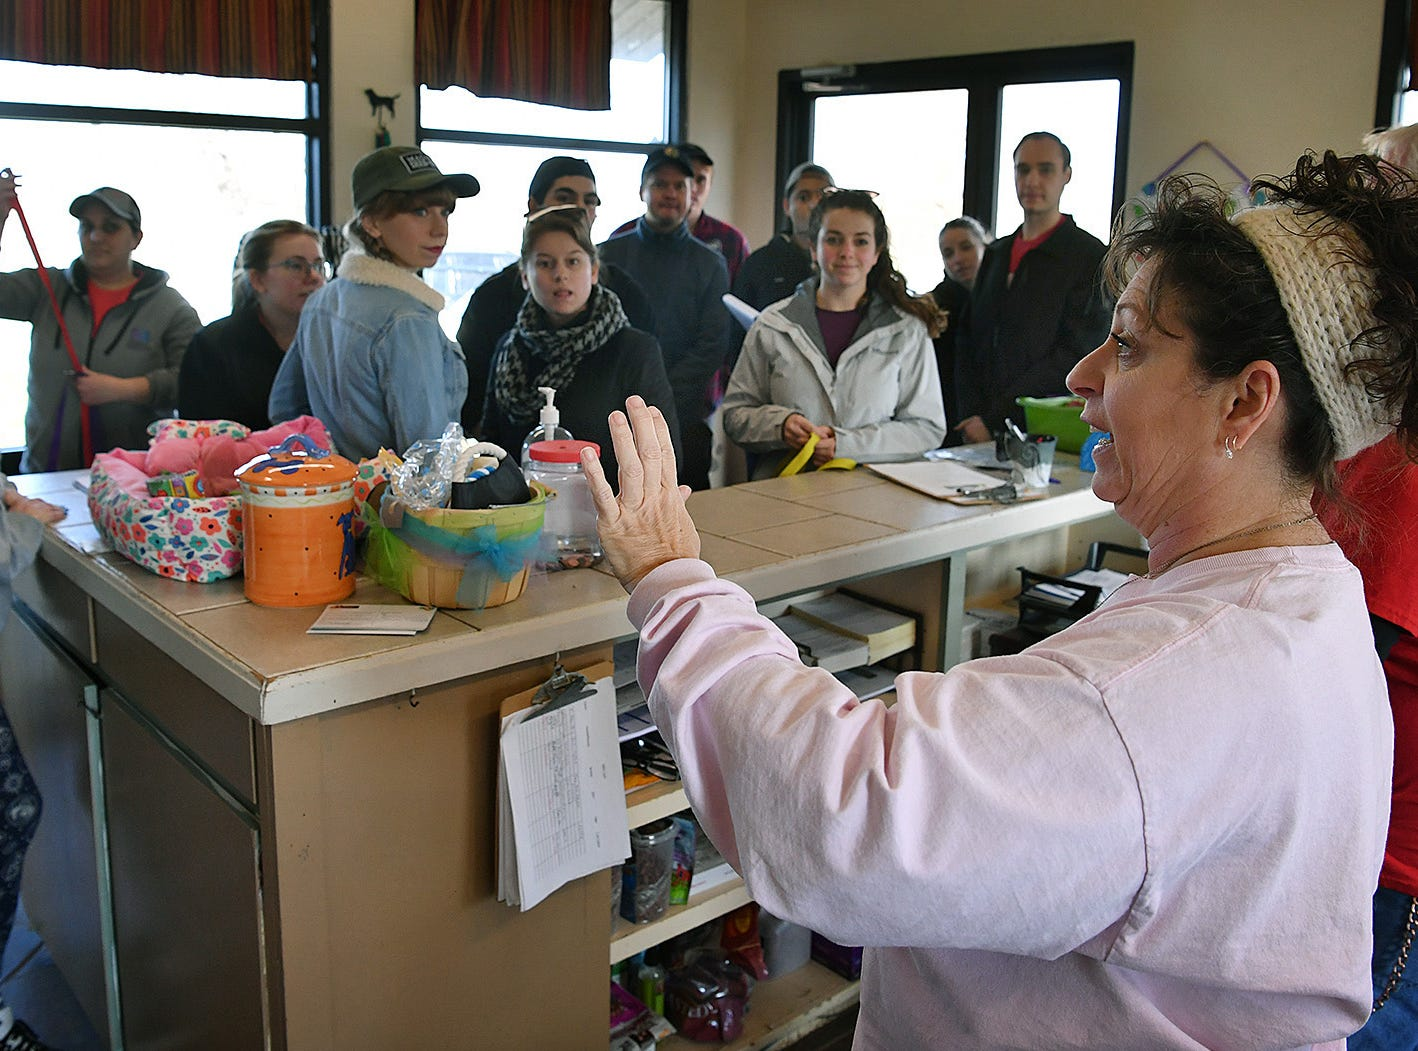 Cheryl Miller, executive director of the Humane Society of Wichita County, gives directions to cast and crew members of the show Paw Patrol, as they arrive to volunteer Monday afternoon.